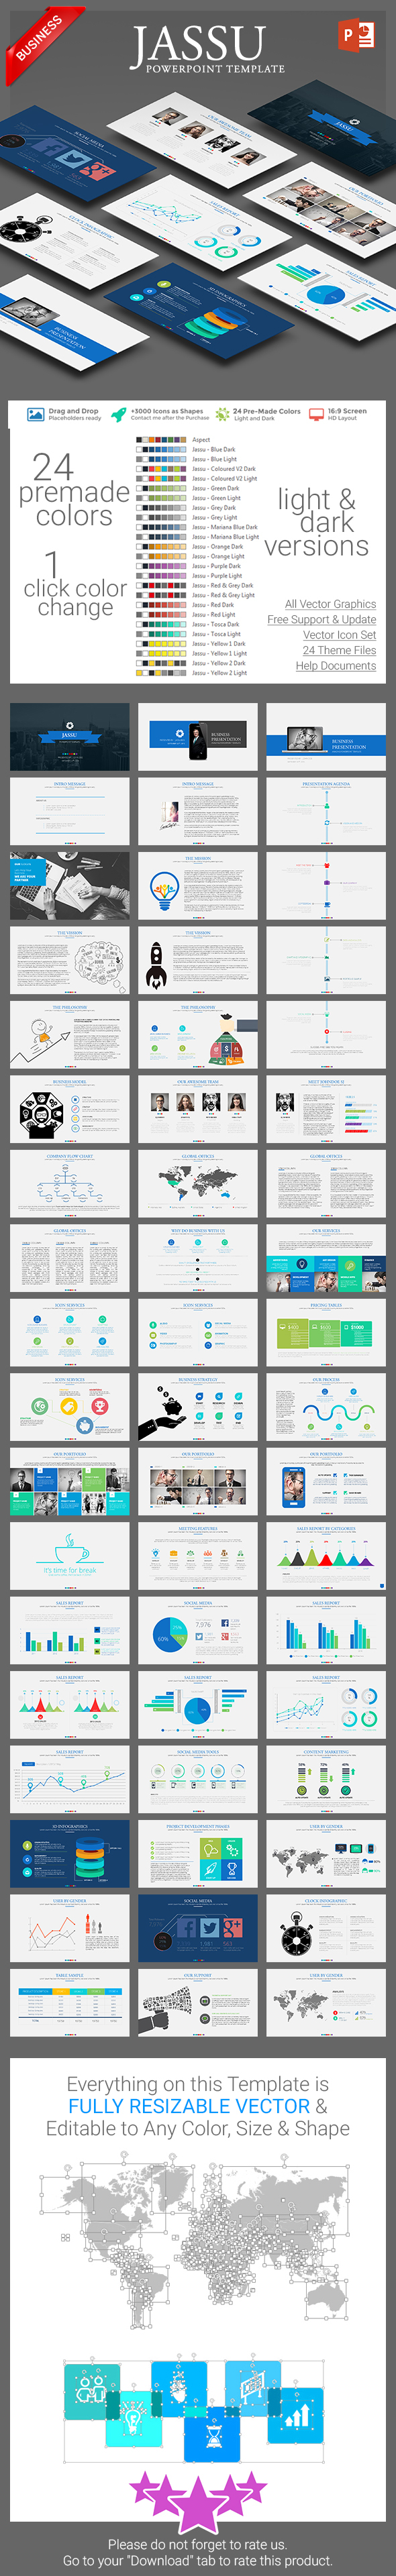 Jassu Business Template - Business PowerPoint Templates